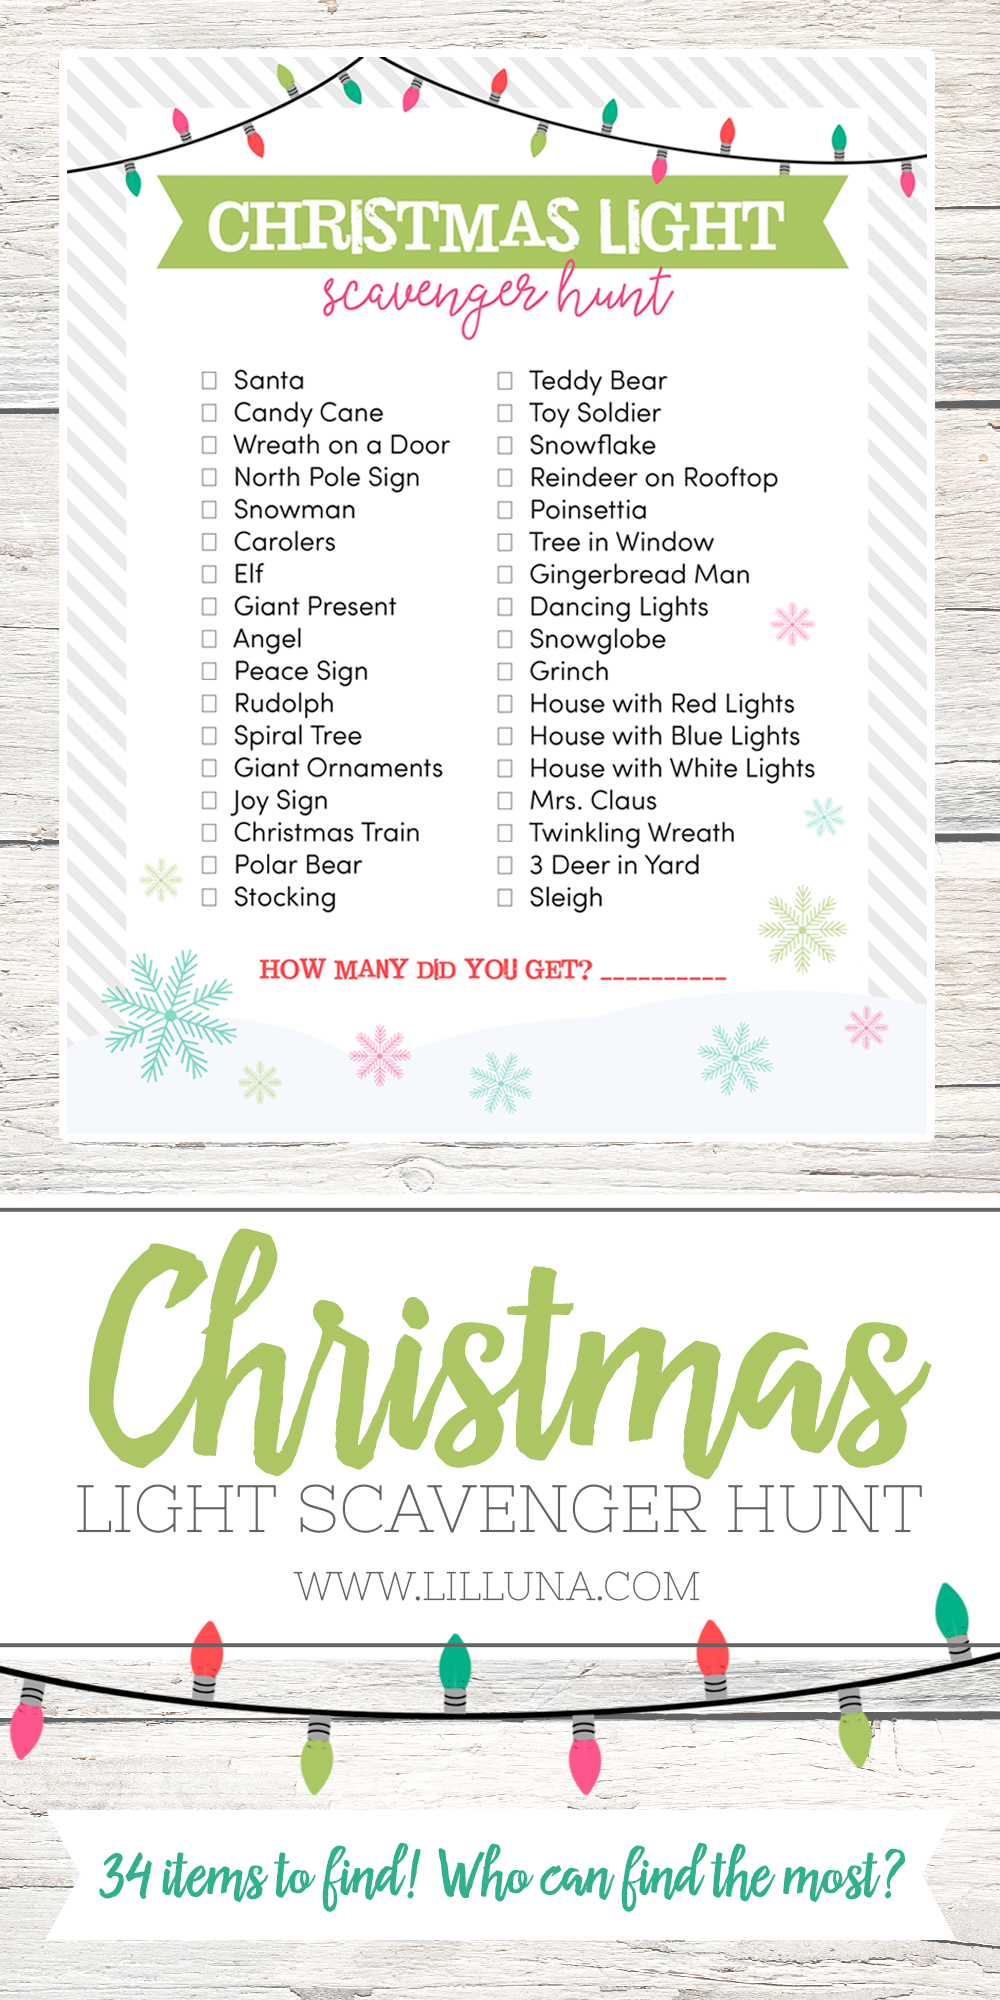 Our Friday Five | Christmas Light Scavenger Hunt from Lil Luna